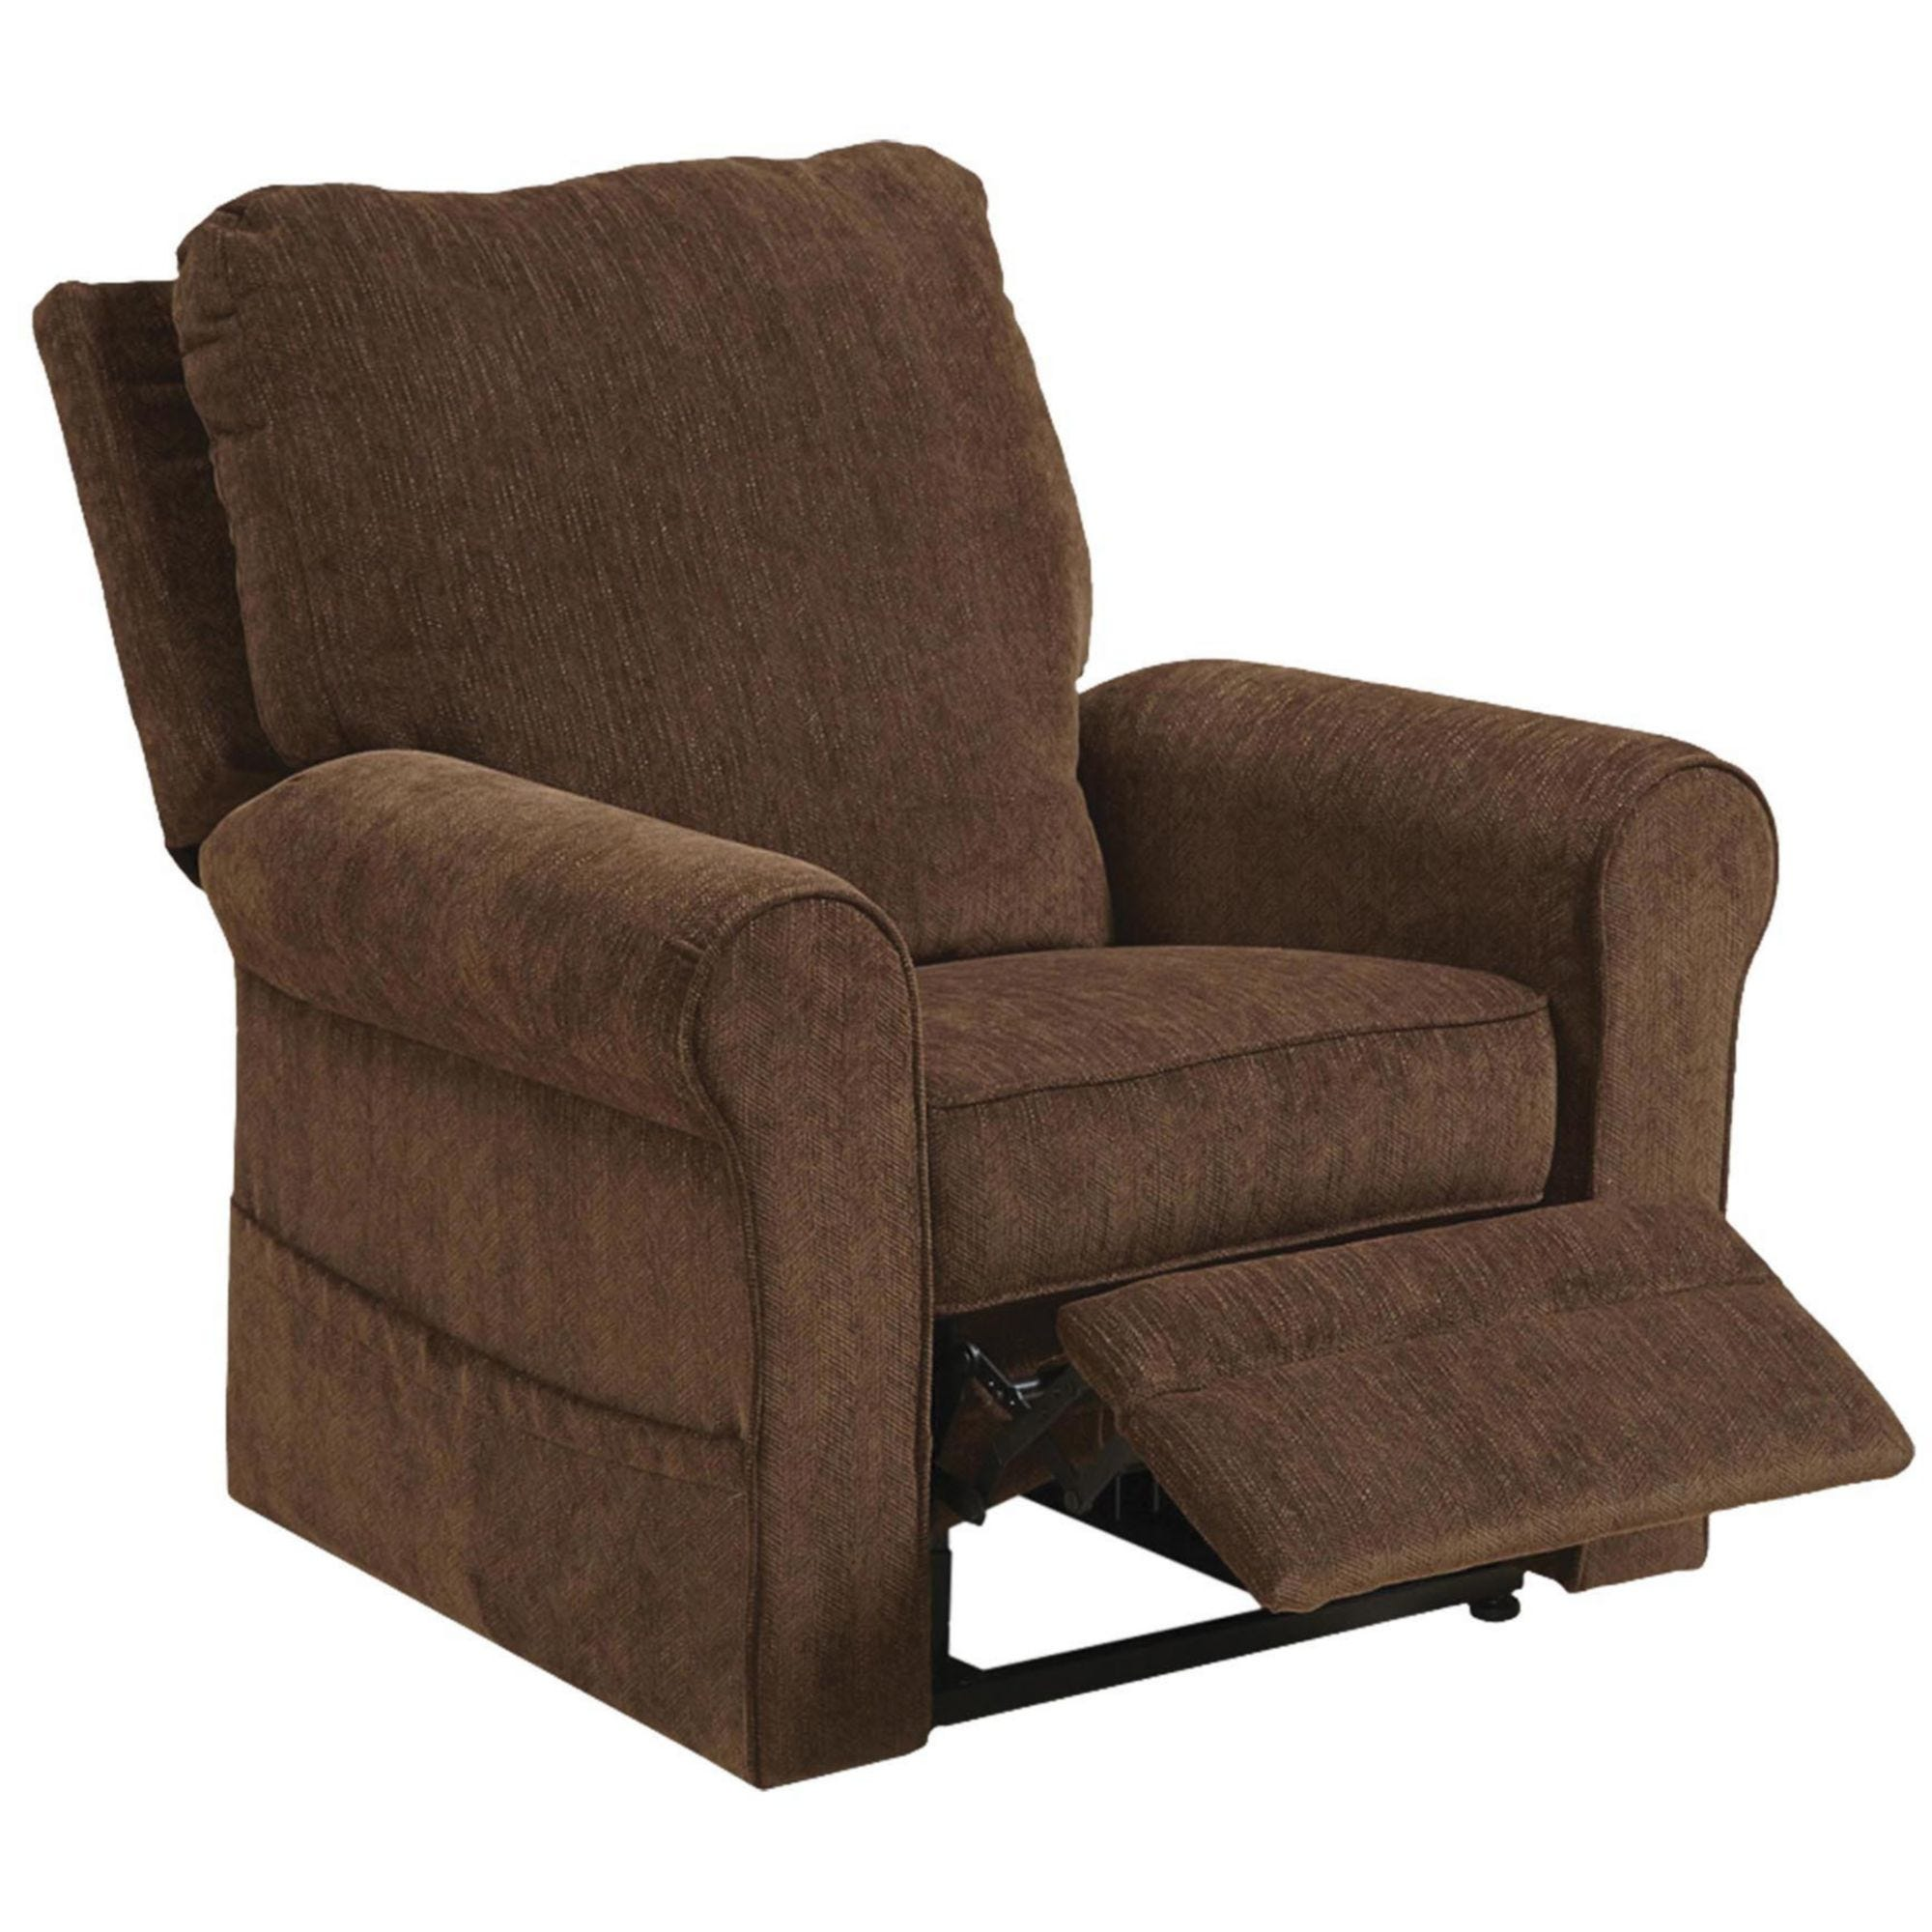 Power Lift Chair Recliner US Mattress